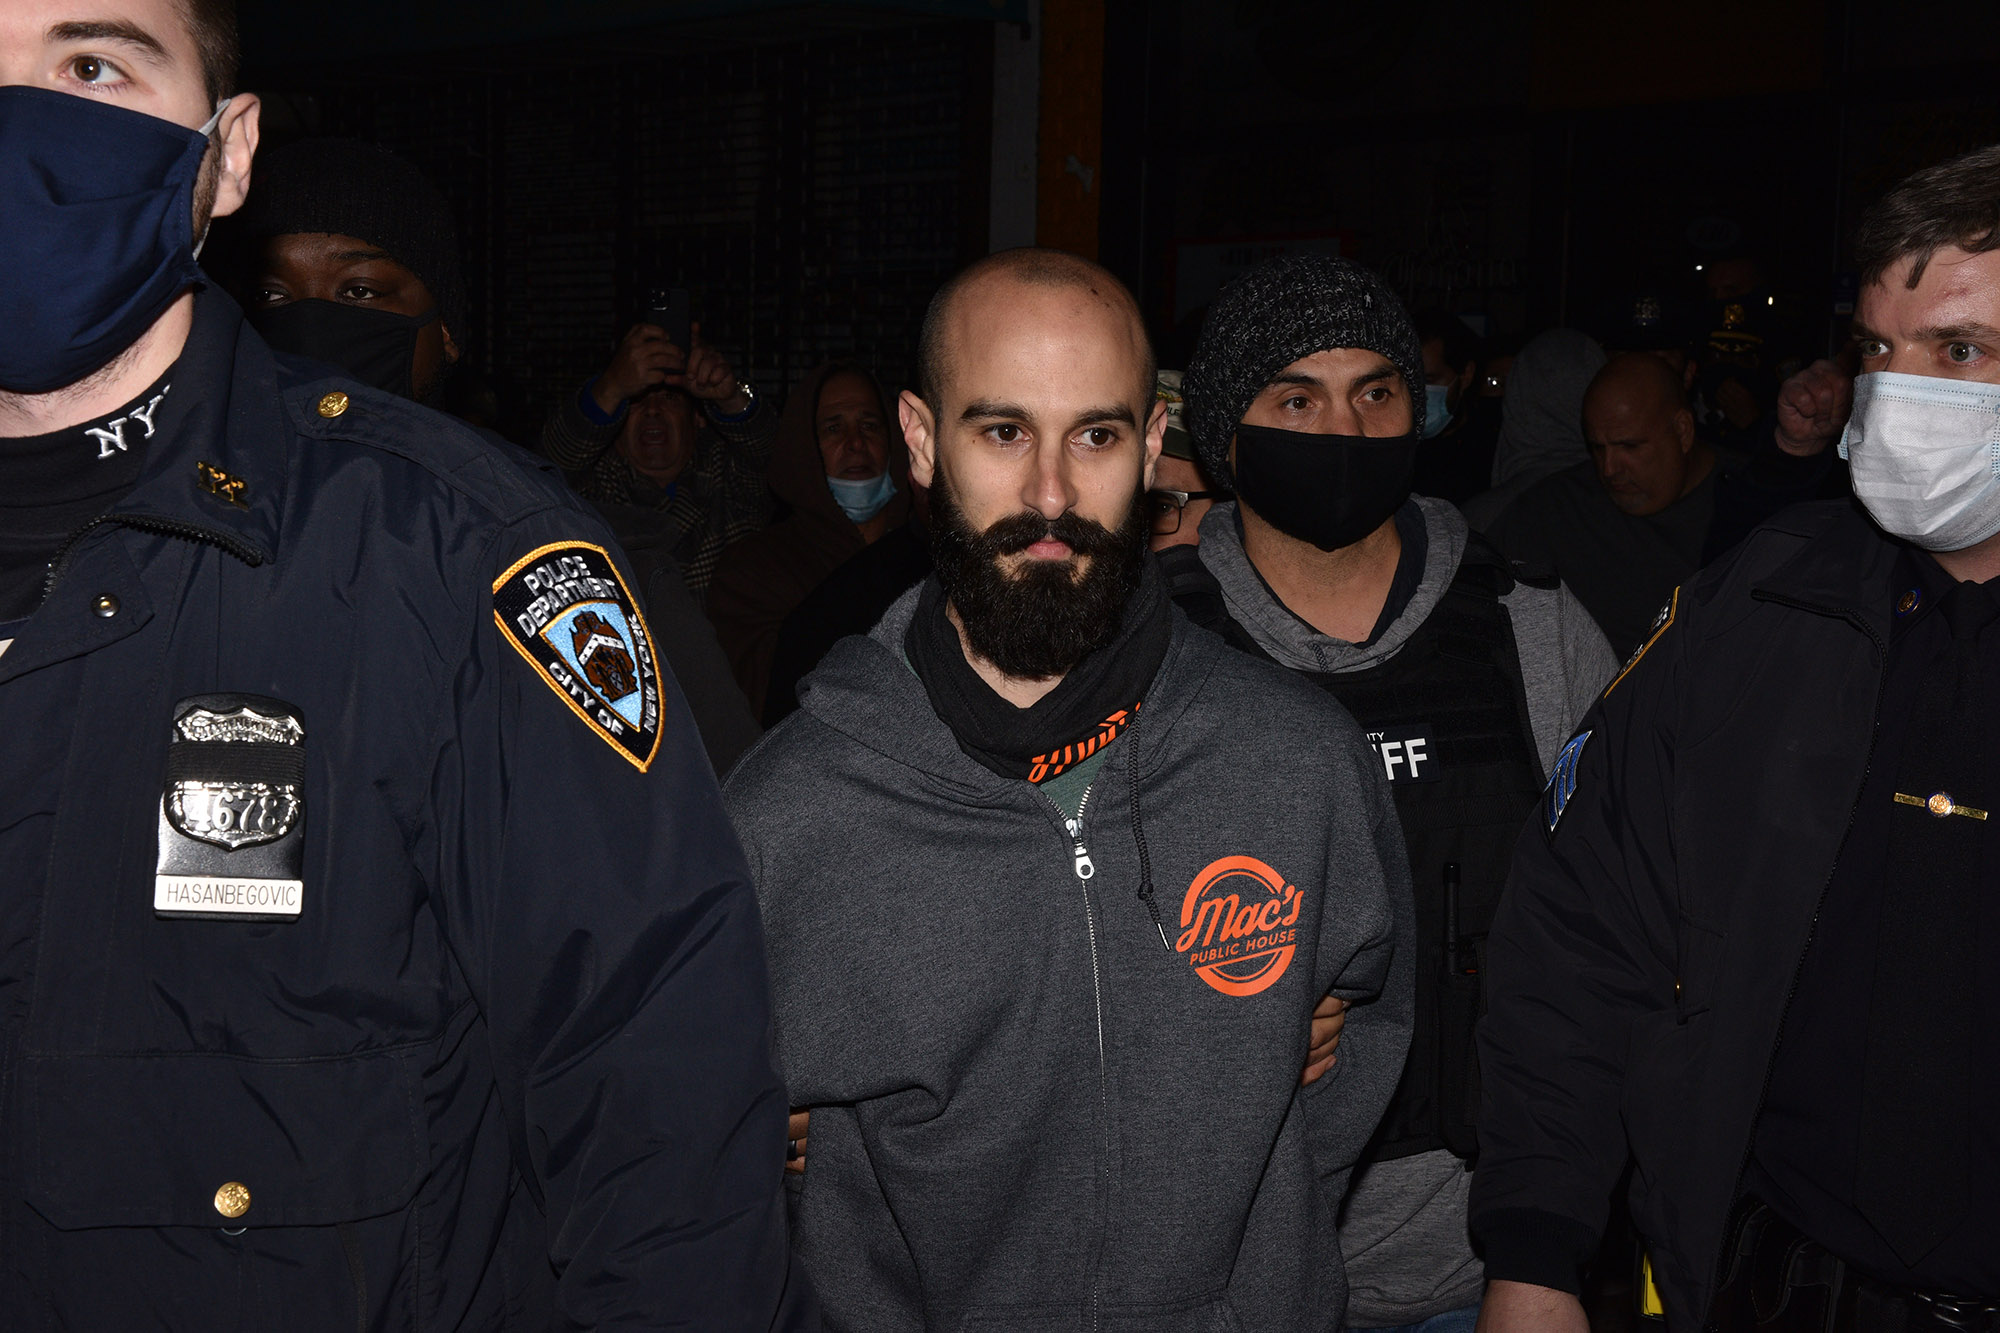 Sheriffs bust defiant NYC bar in COVID-19 hotspot